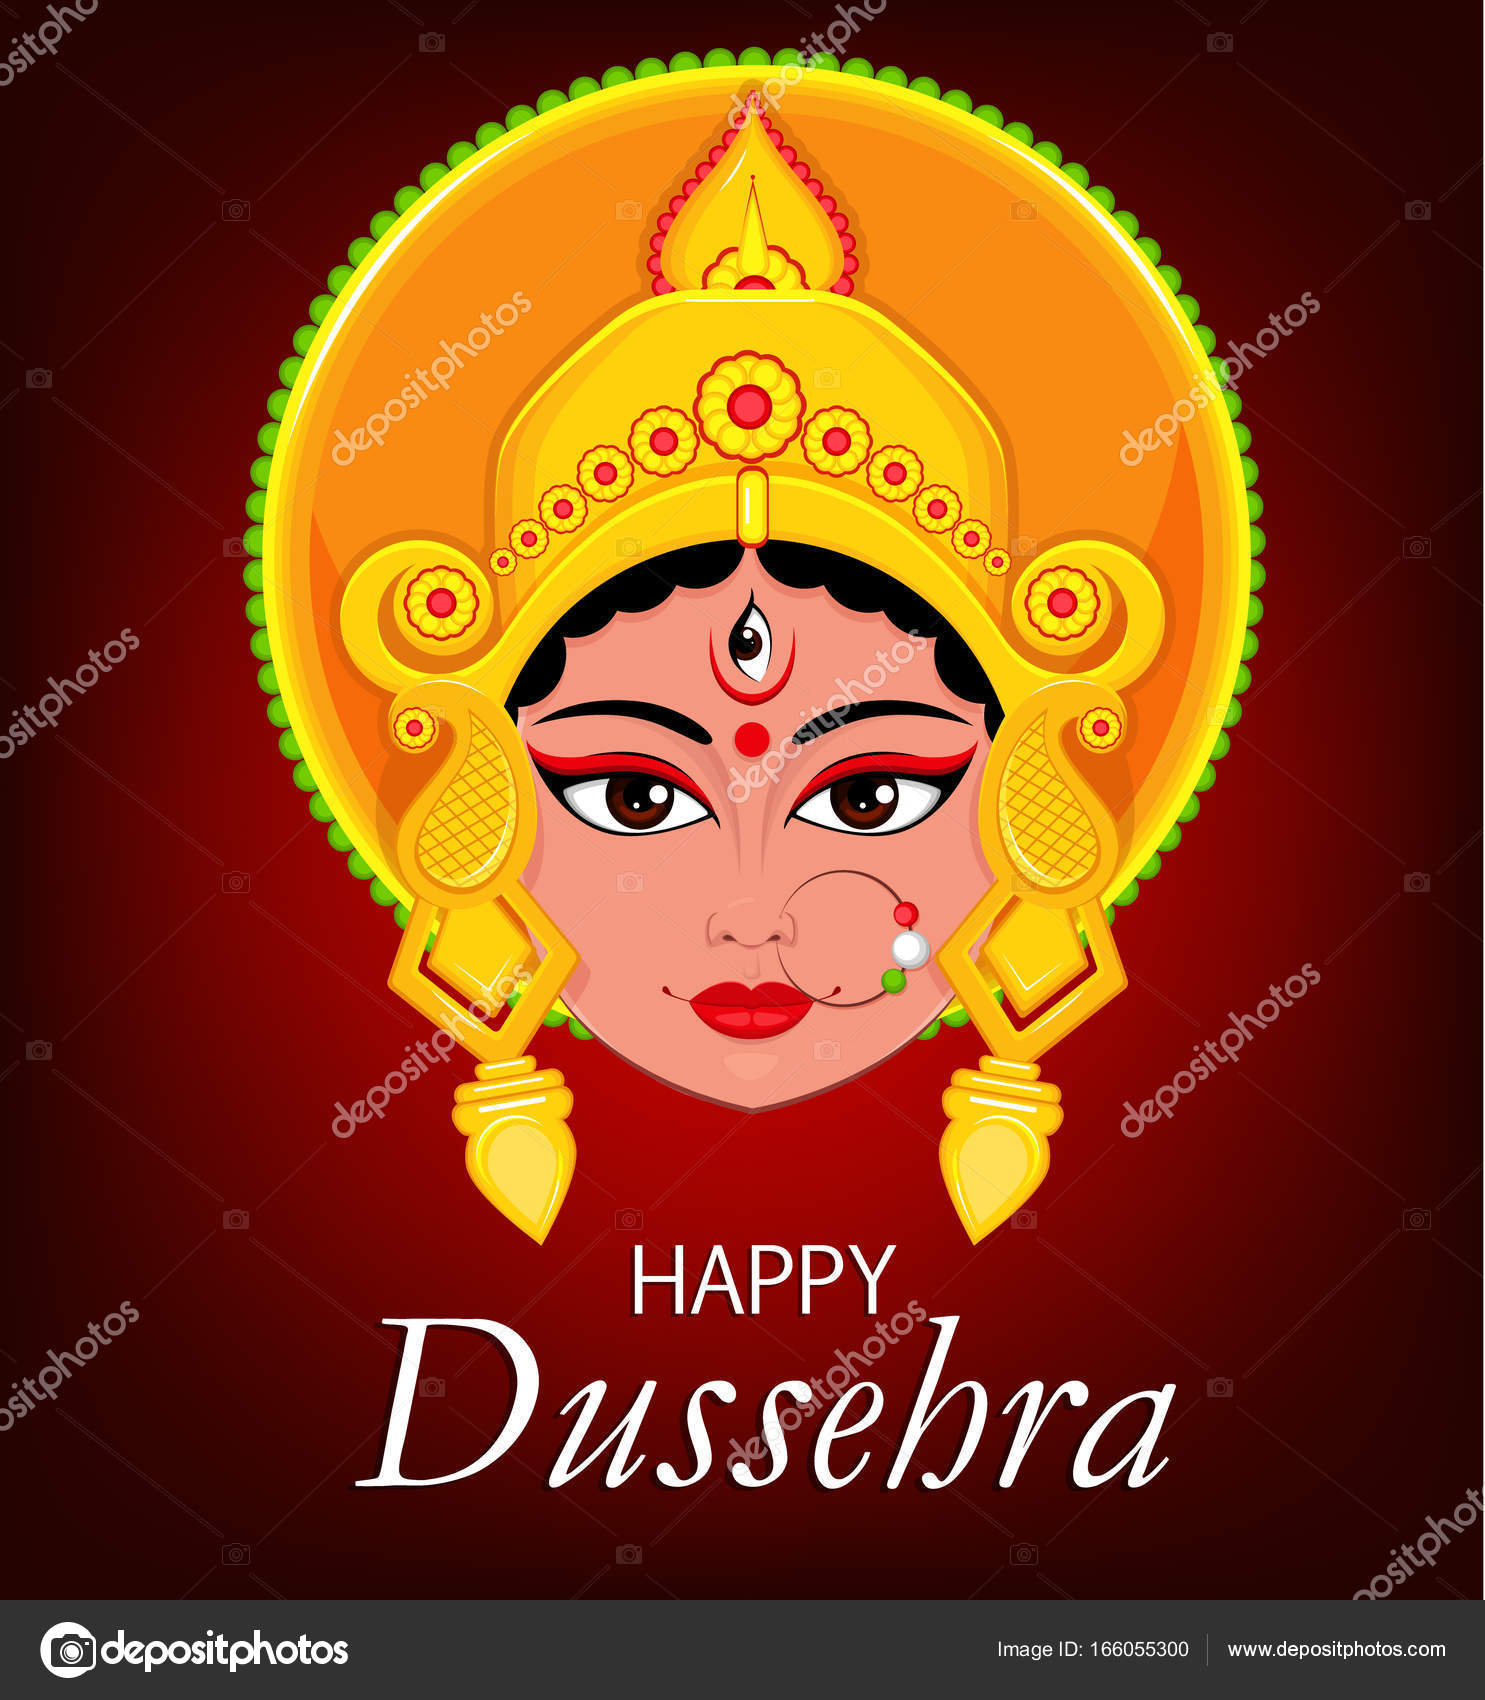 Happy dussehra greeting card maa durga face for hindu festival happy dussehra greeting card maa durga face for hindu festival stock vector kristyandbryce Image collections